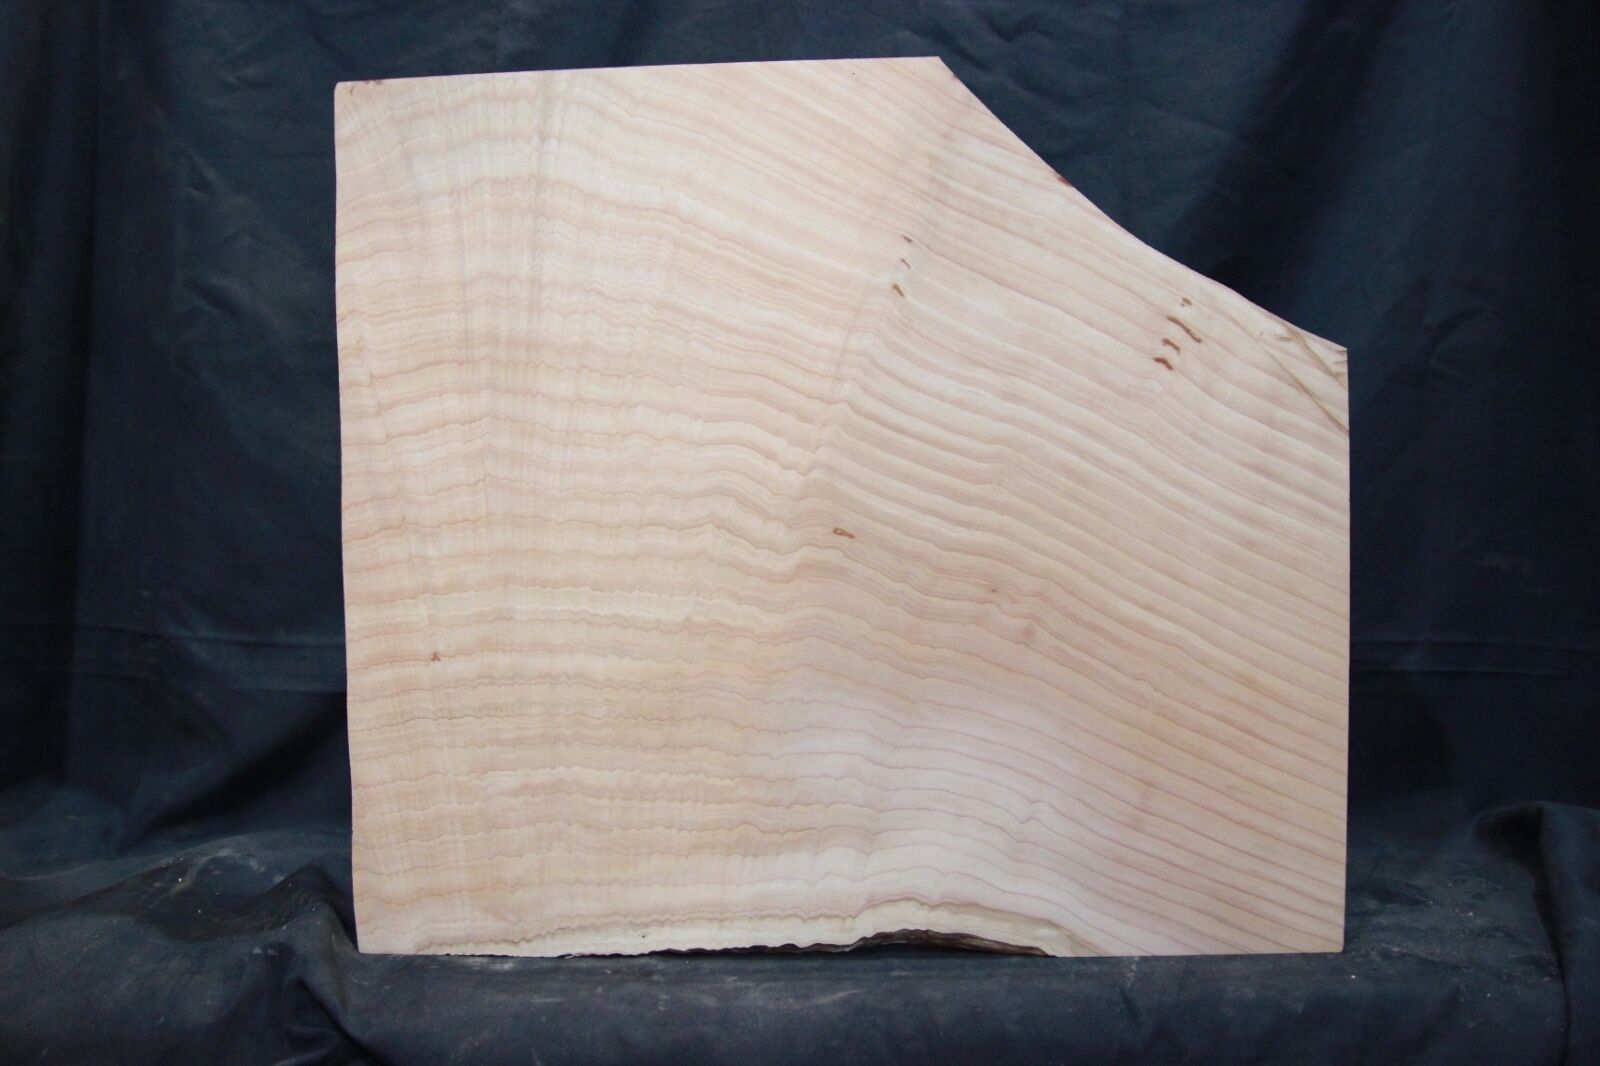 Cedar 1-piece    Bass guitar body blank    1531